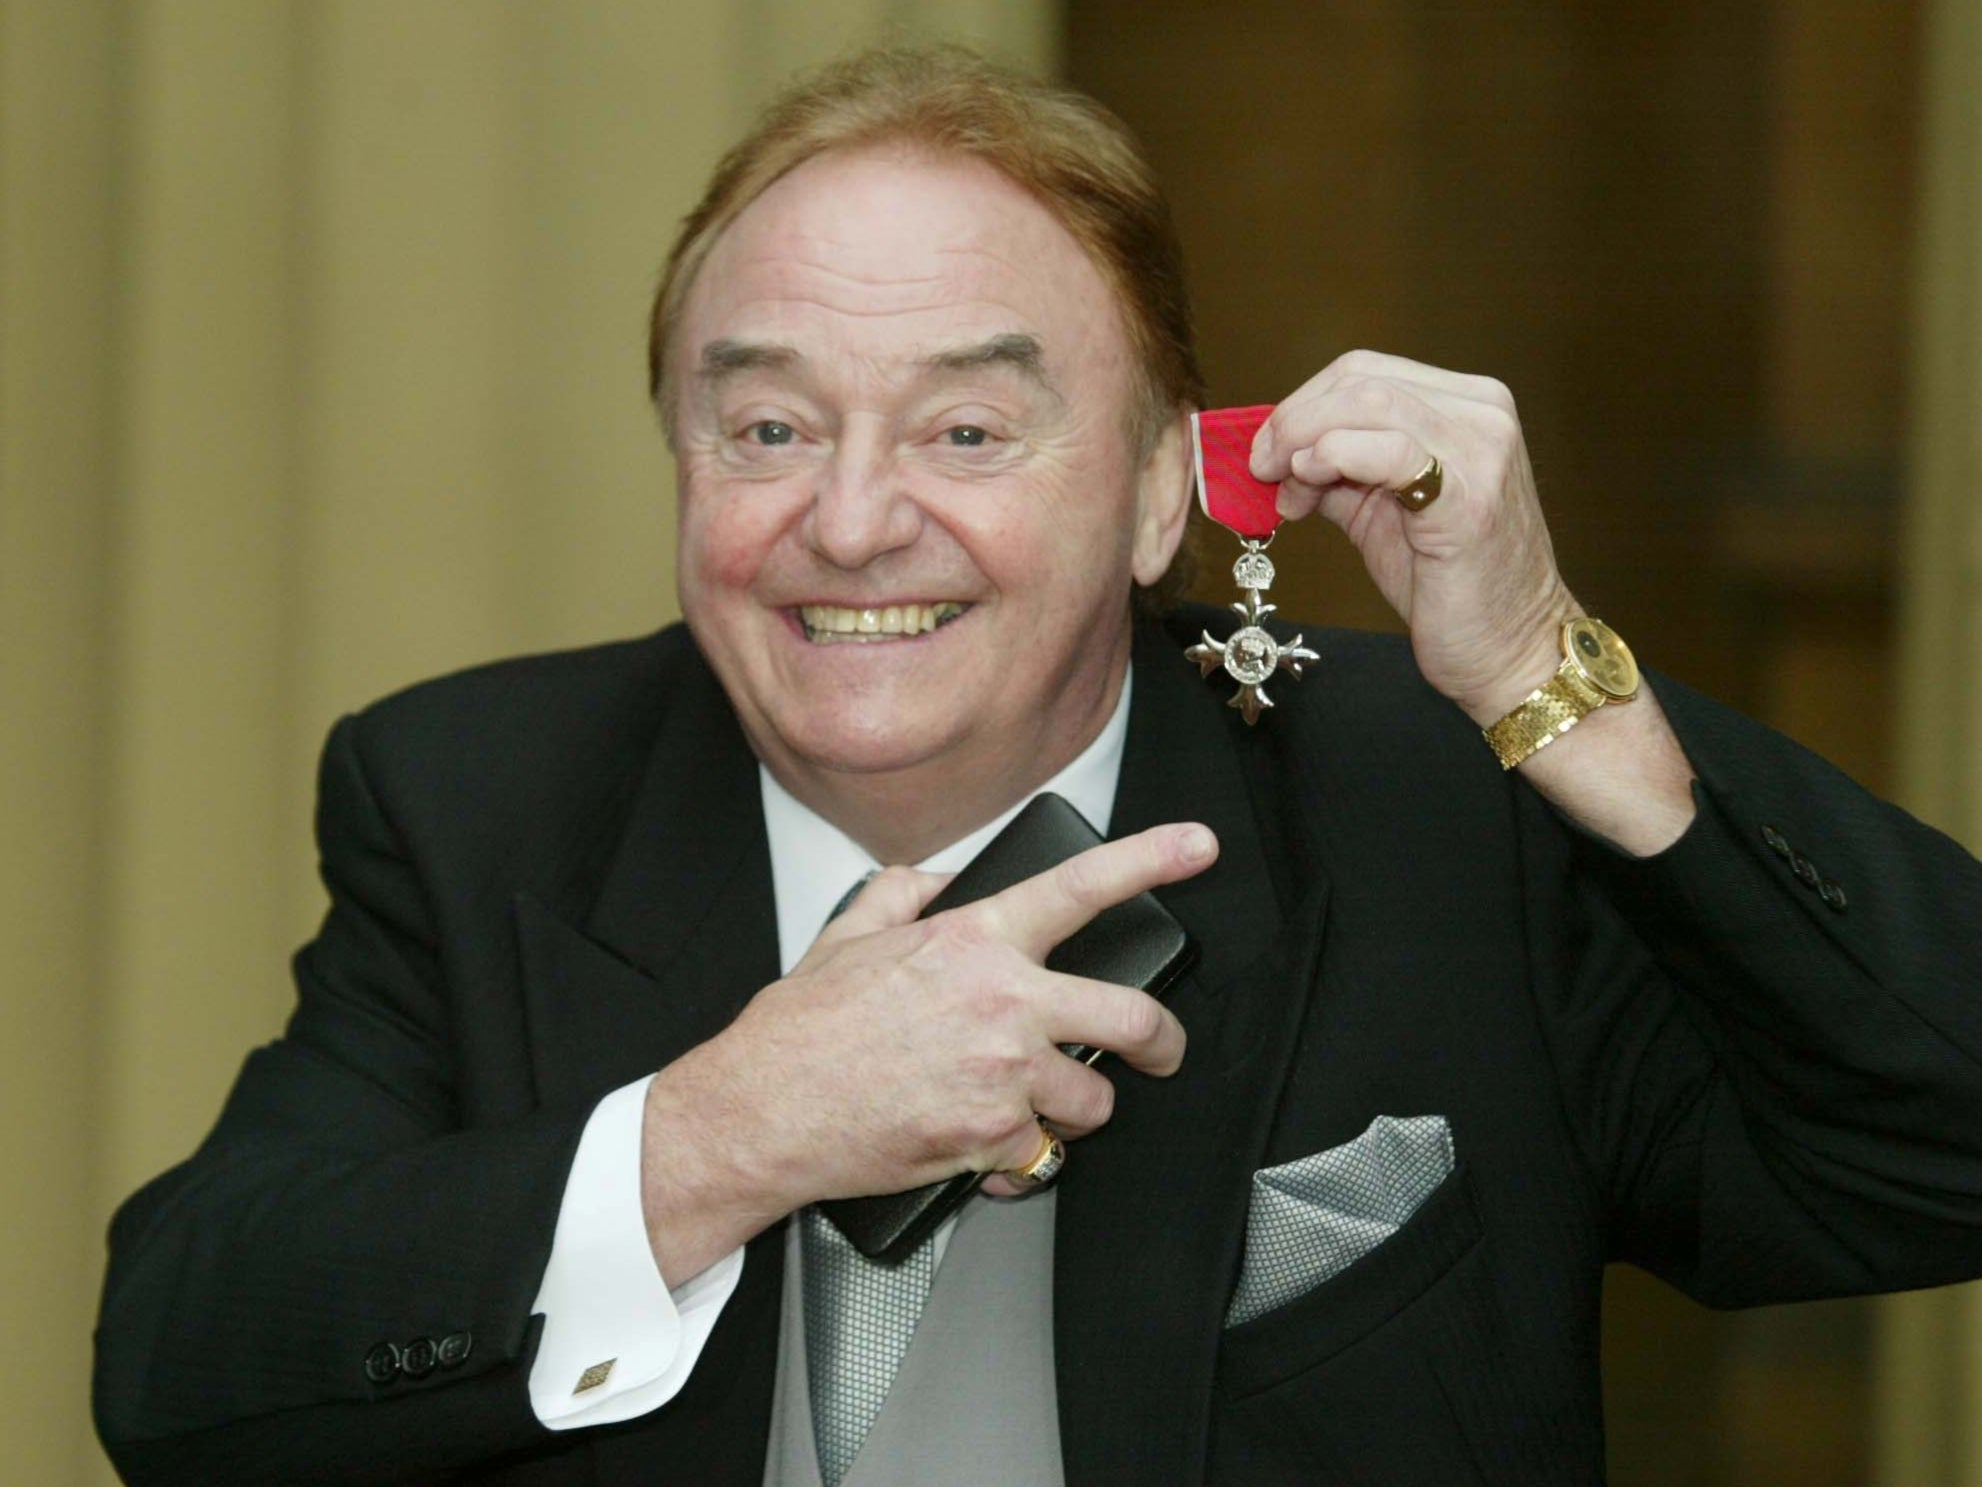 Gerry Marsden death: Gerry and the Pacemakers star passes away aged 78 | The Independent